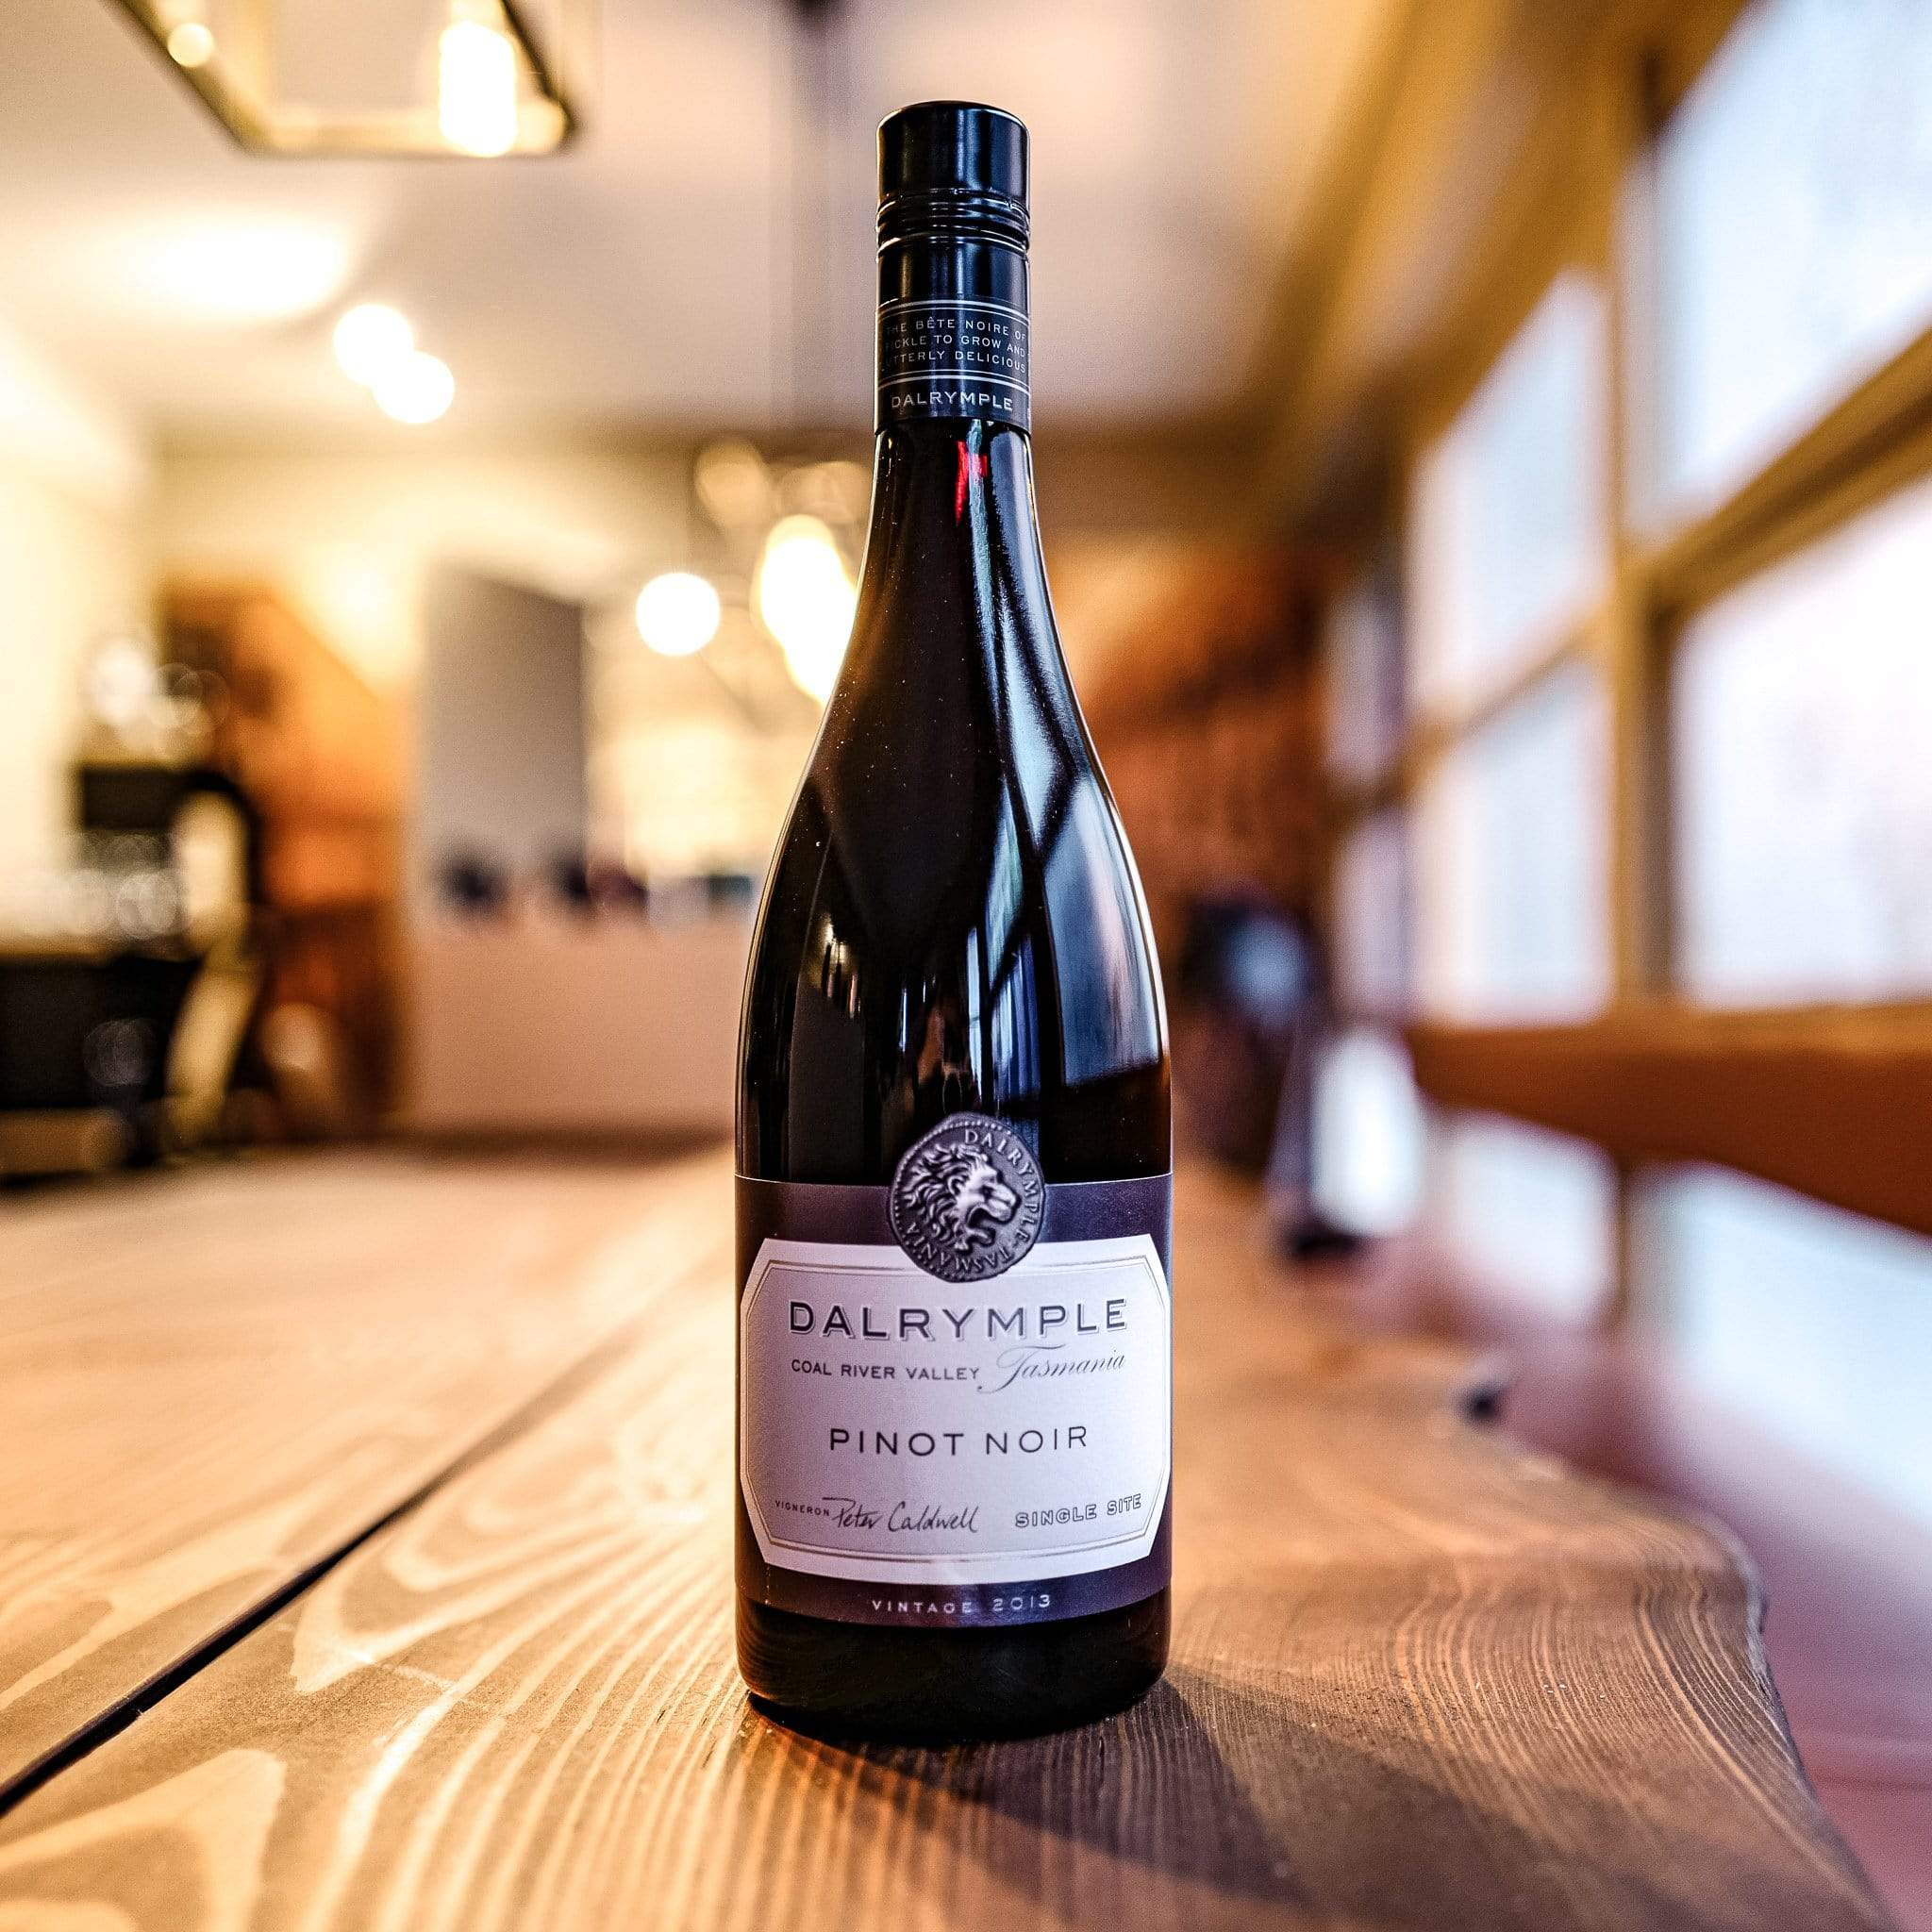 Dalrymple Single Site Coal River Valley Pinot Noir 2013